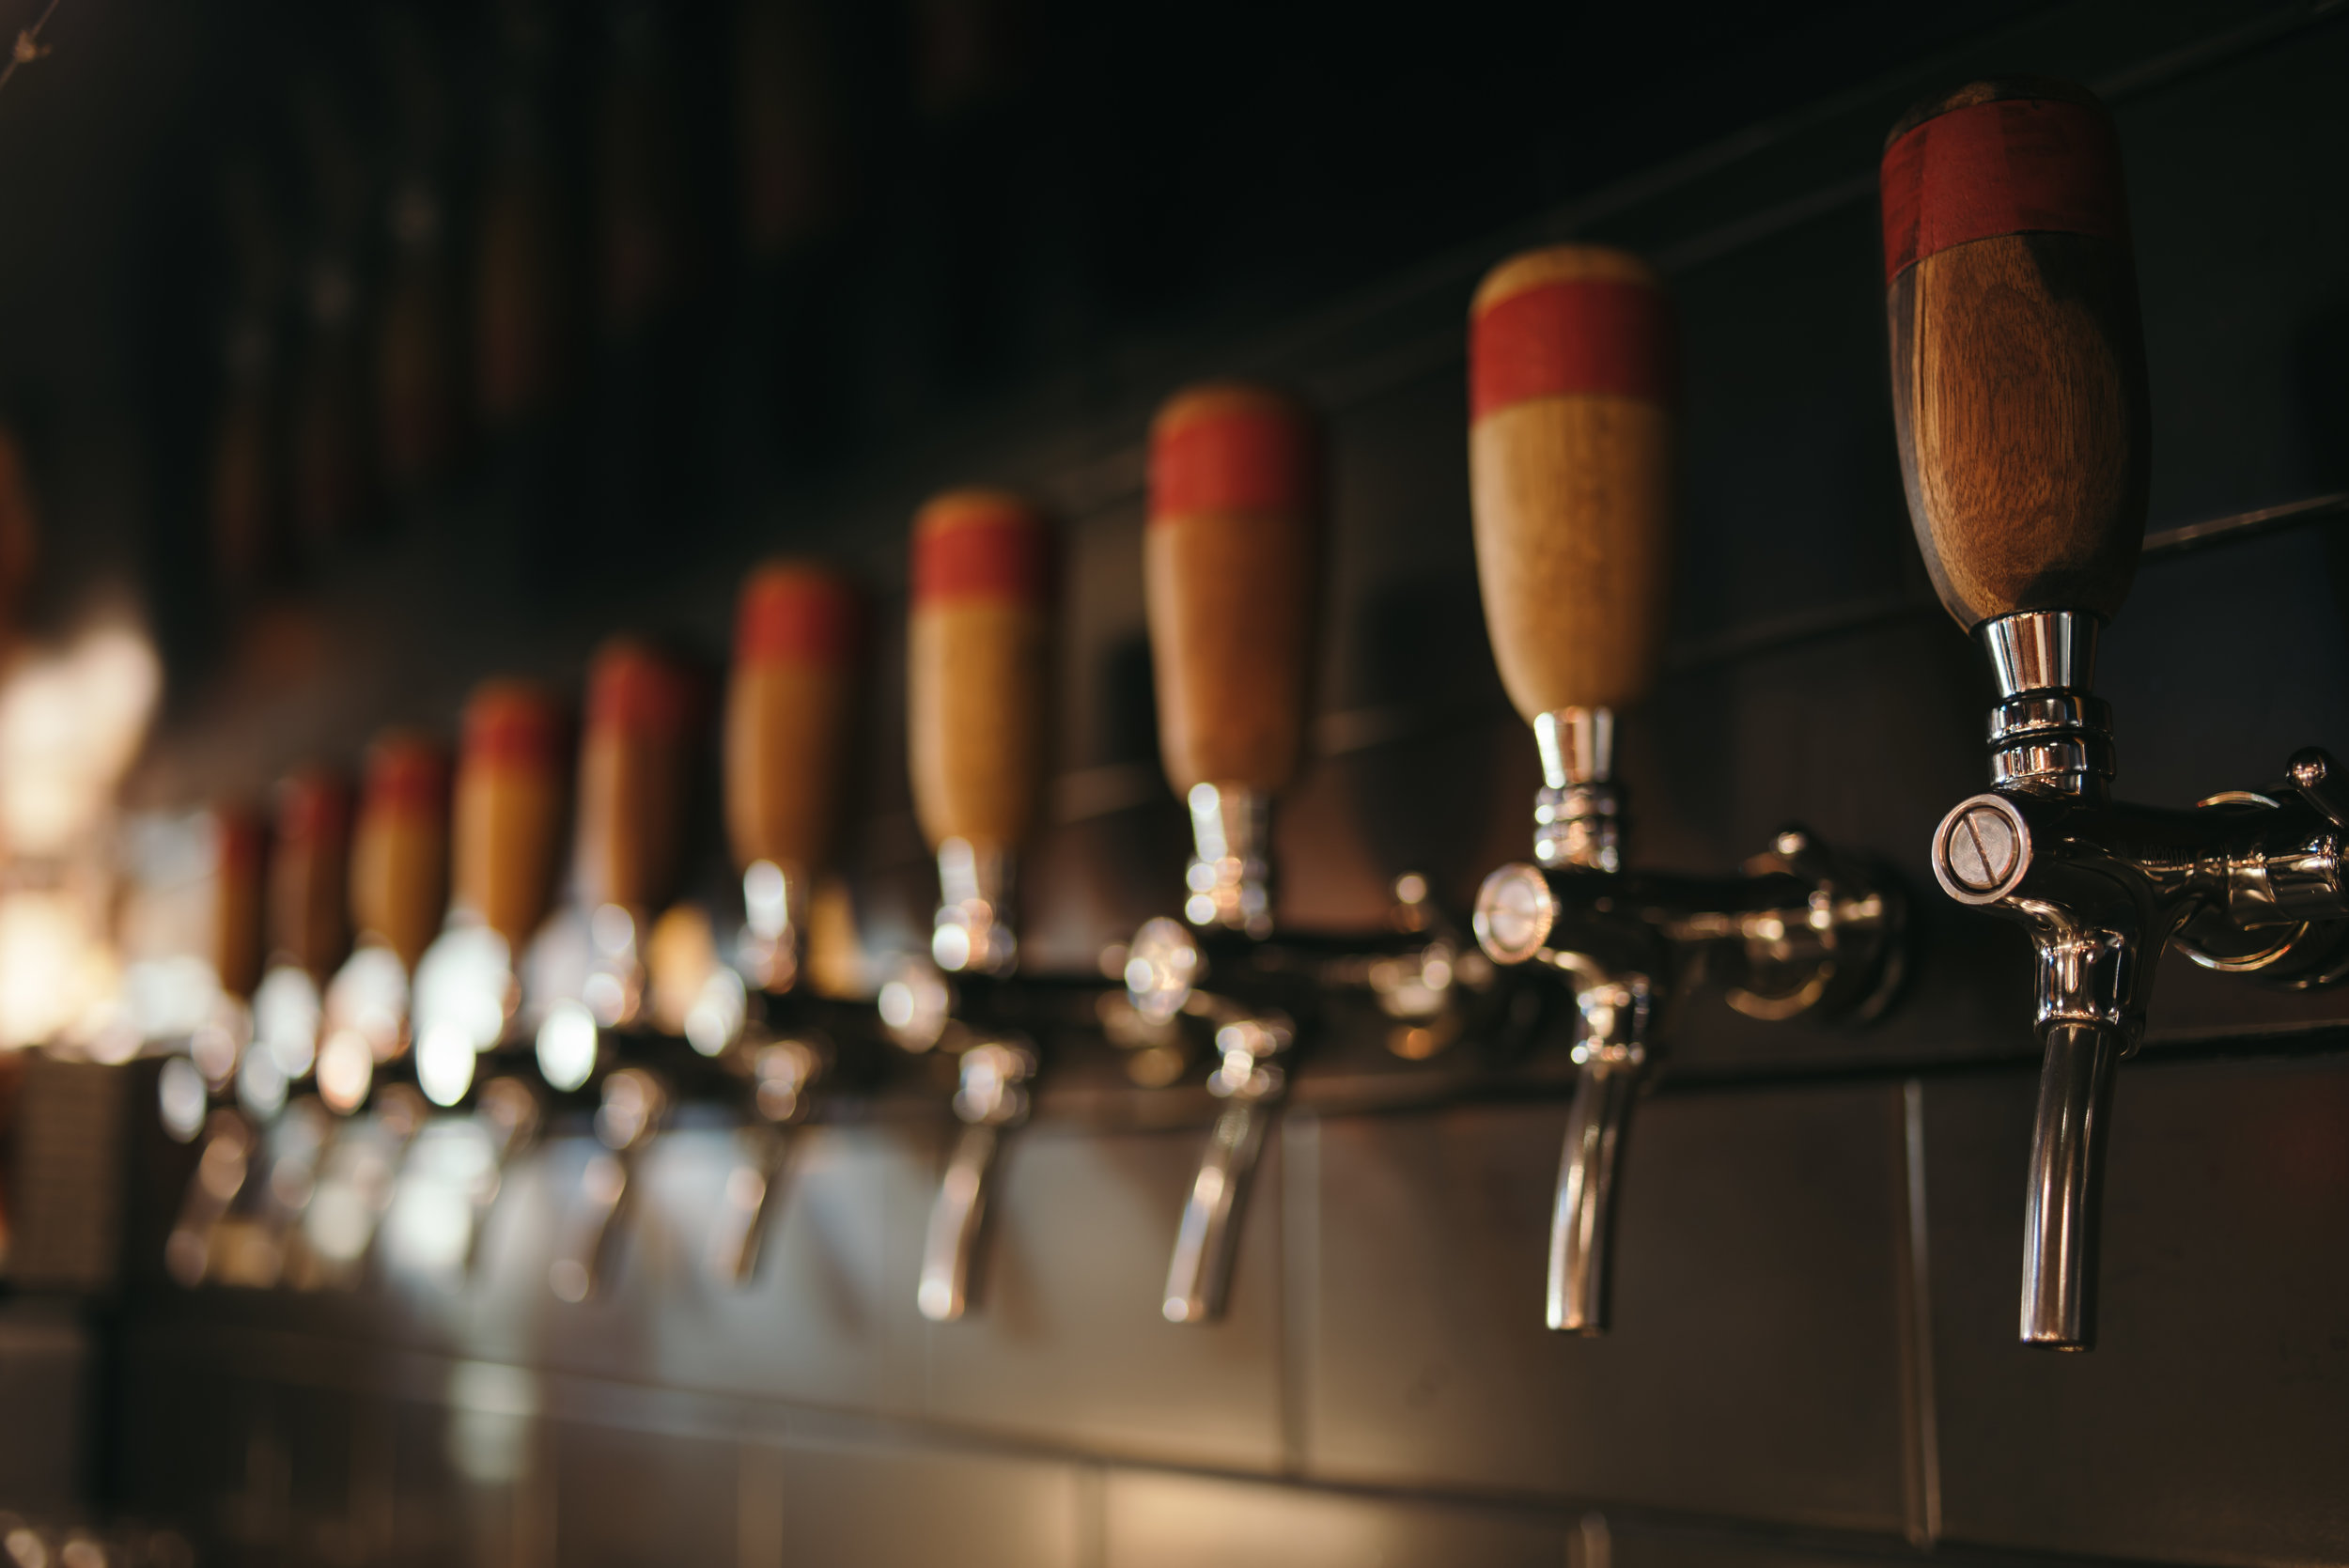 - The taps played a central part of the bar due to the restaurant's association with Young Master.